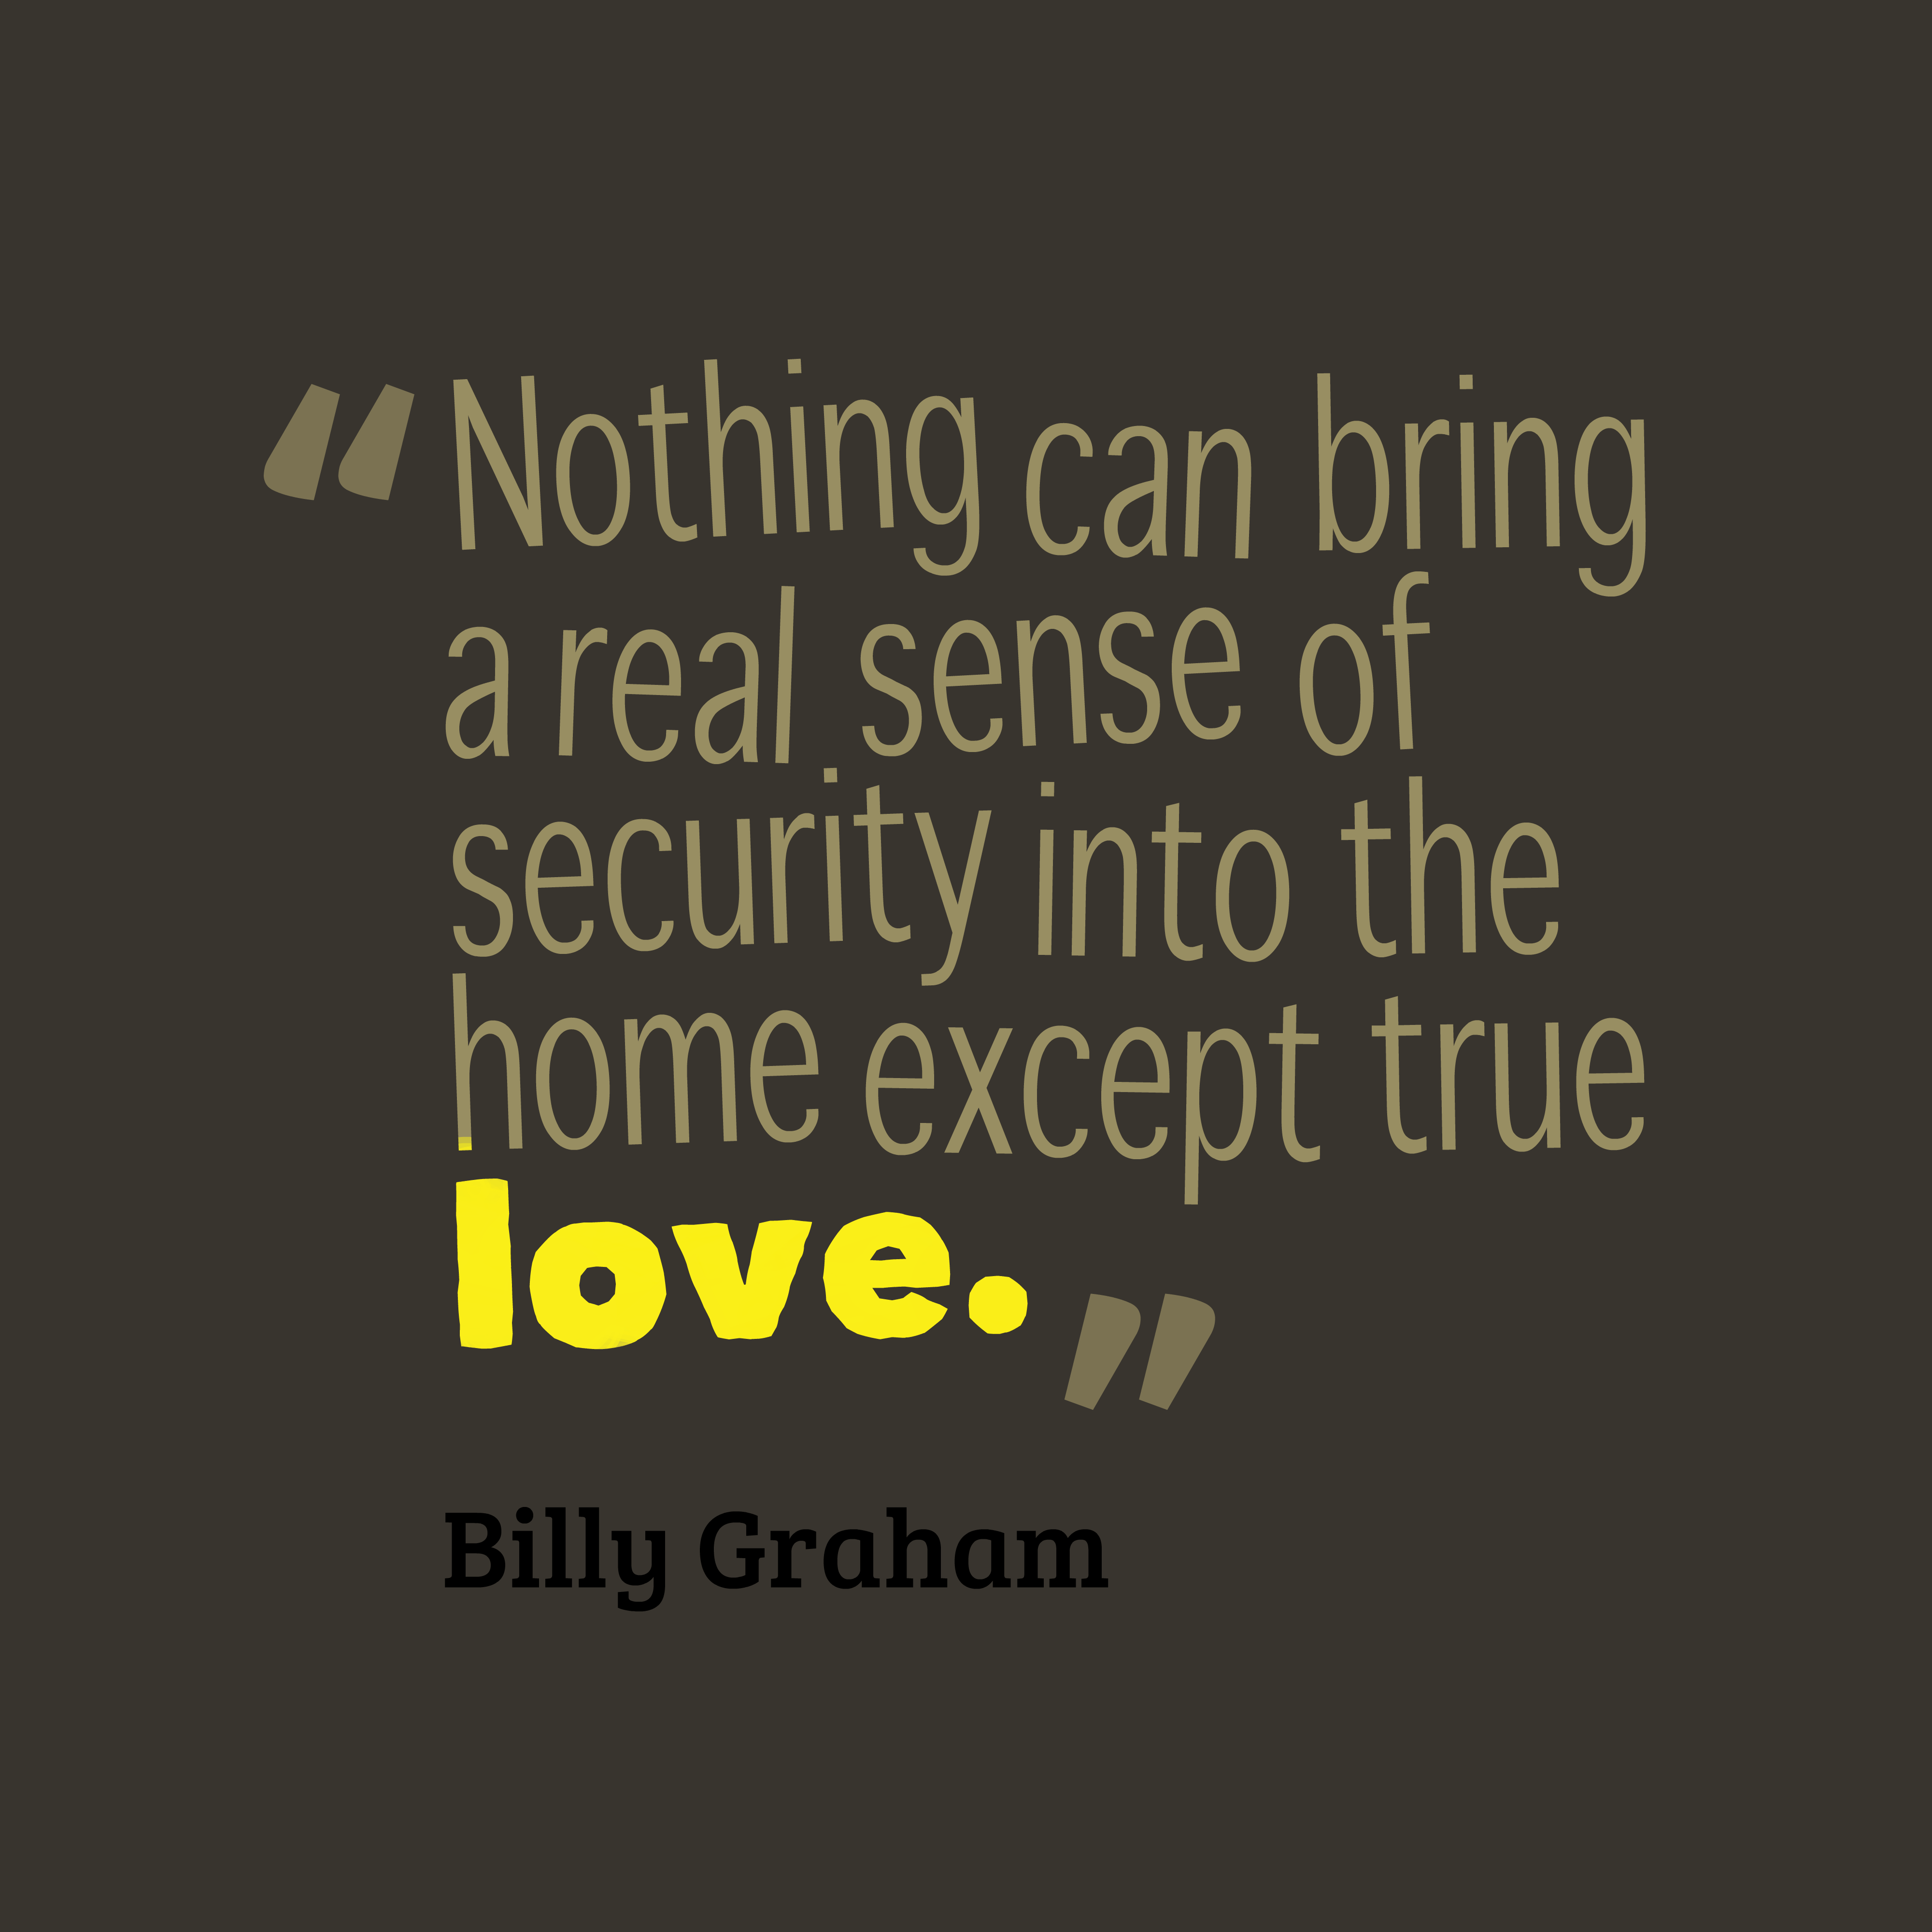 Quotes About Security 81 Best Bill Watterson Quotes Images